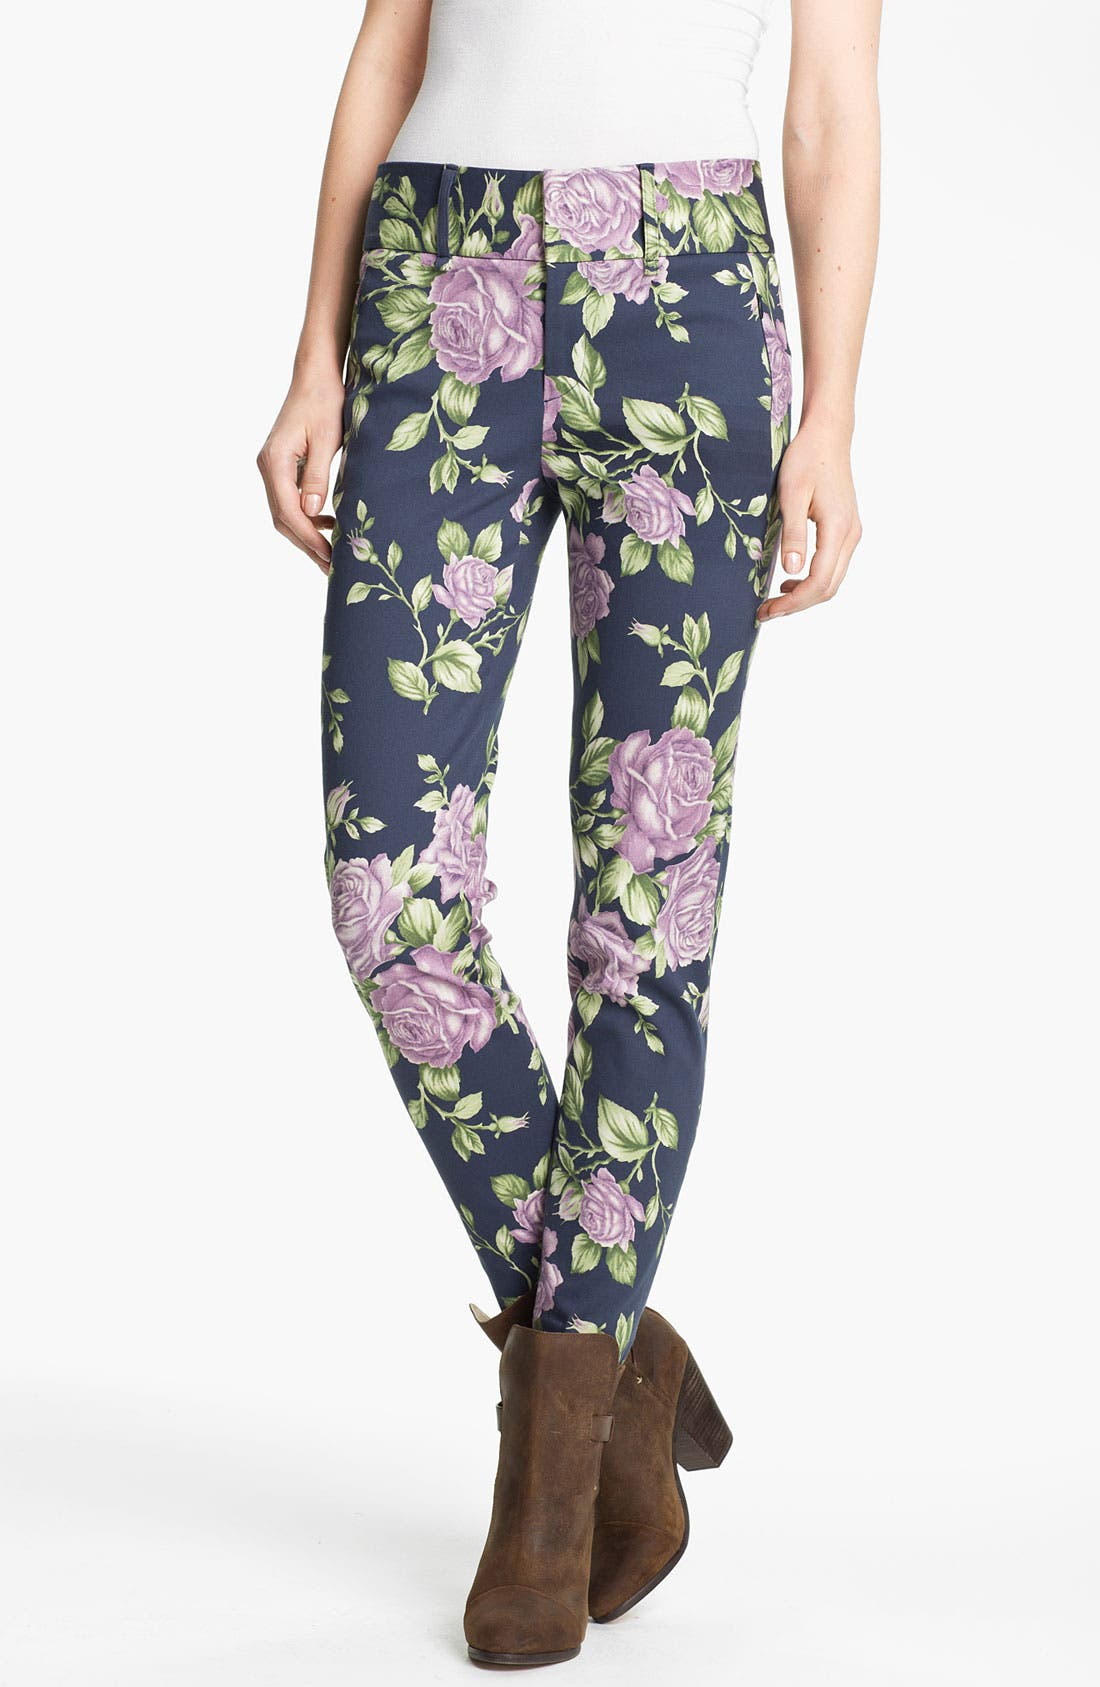 Alternate Image 1 Selected - rag & bone 'Malin' Floral Print Skinny Stretch Pants